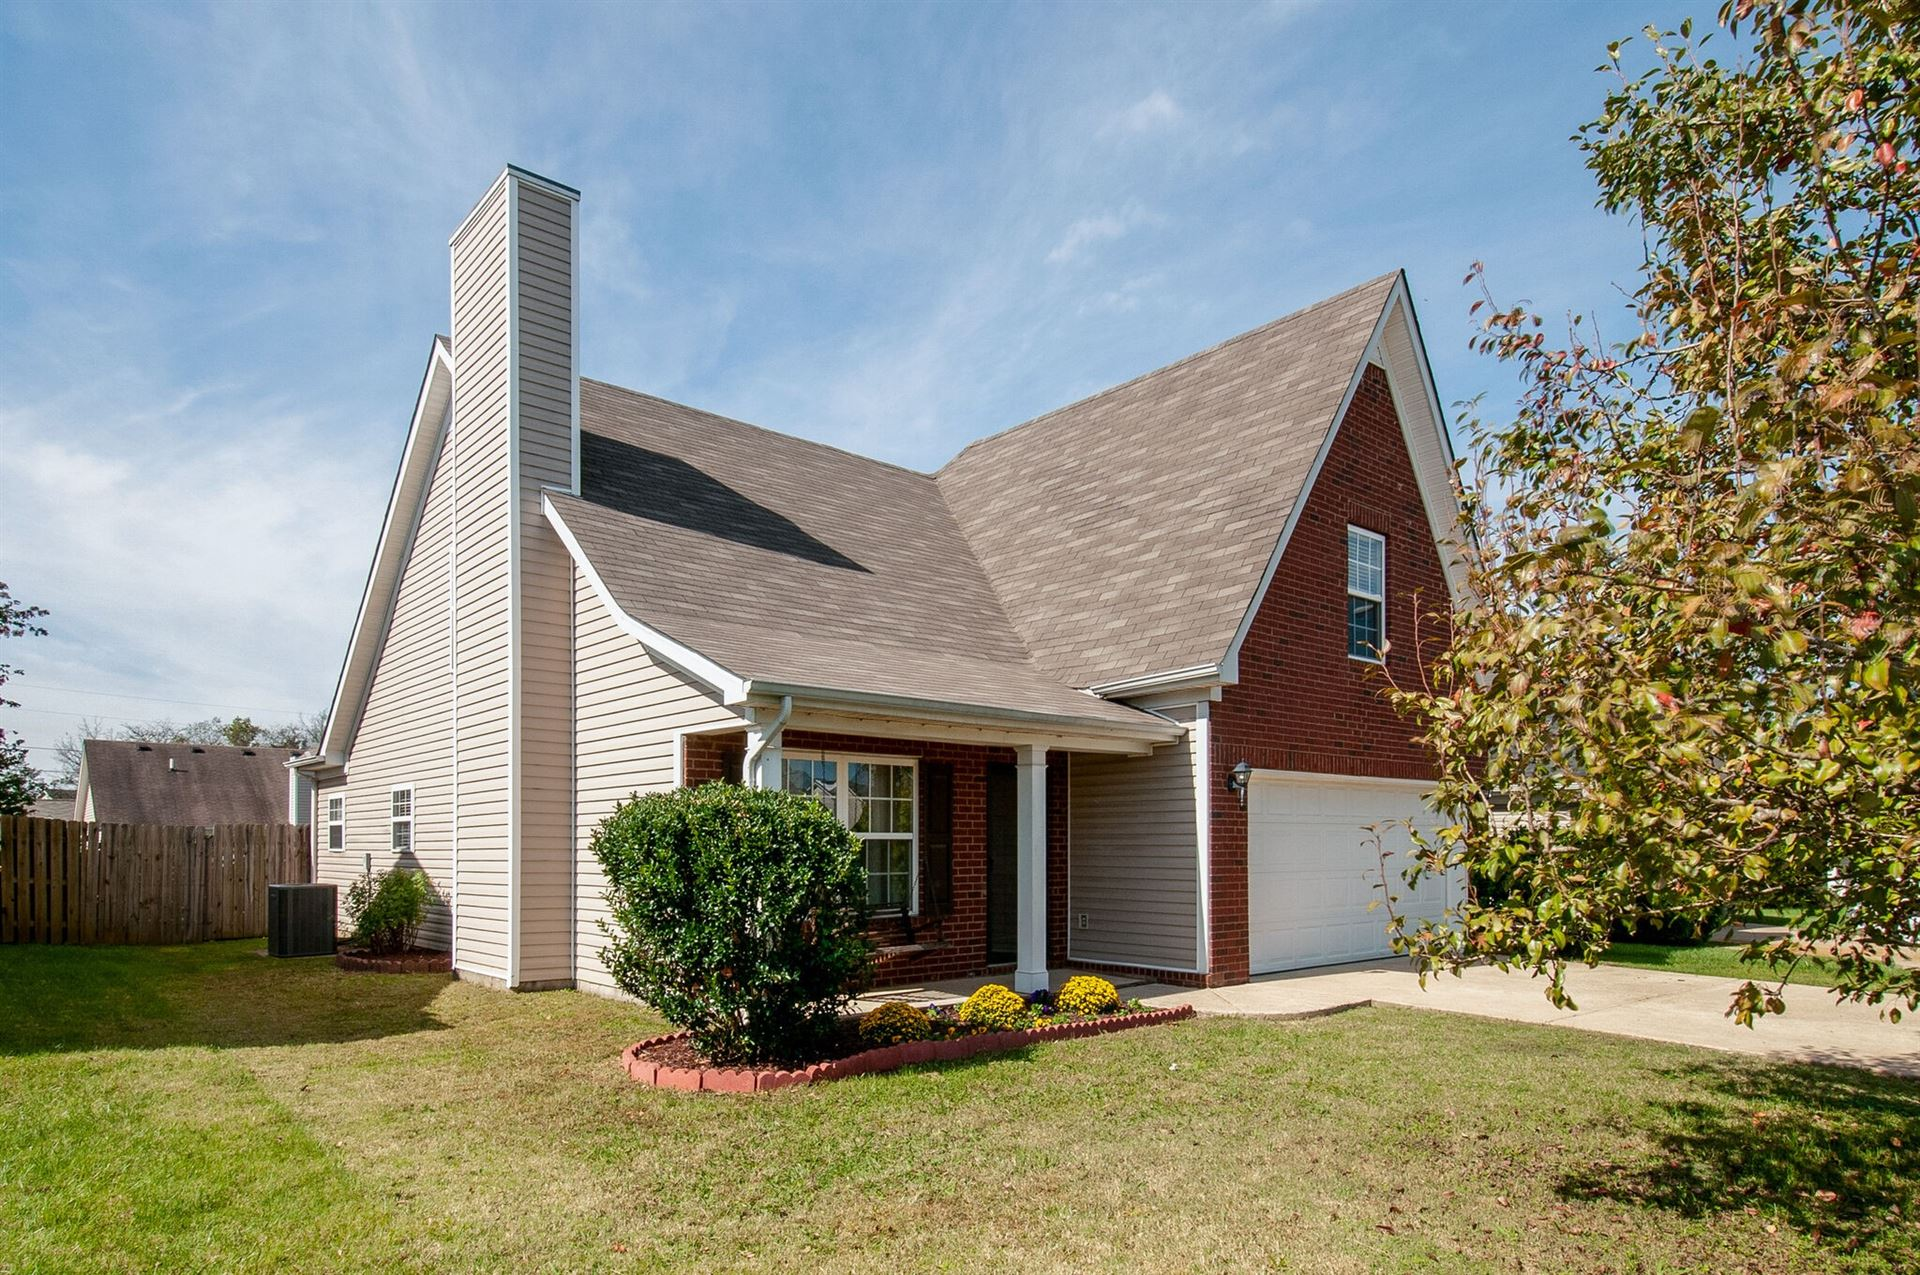 Photo of 3015 Deer Trail Dr, Spring Hill, TN 37174 (MLS # 2301924)